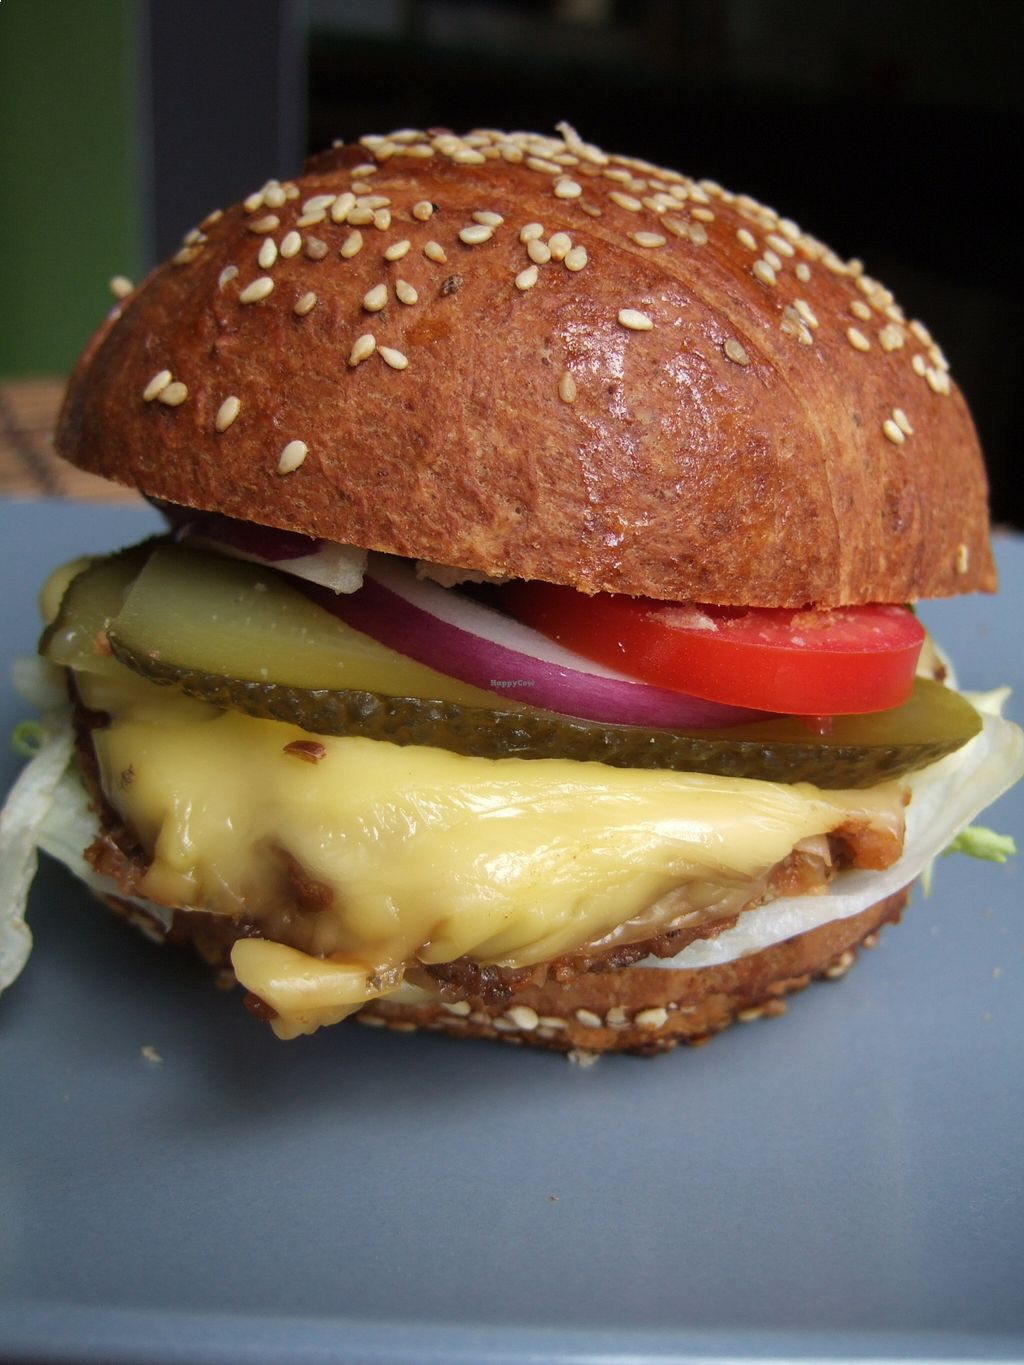 """Photo of RepaRetek  by <a href=""""/members/profile/reparetek"""">reparetek</a> <br/>vegan burger by RepaRetek <br/> August 23, 2015  - <a href='/contact/abuse/image/61582/114816'>Report</a>"""